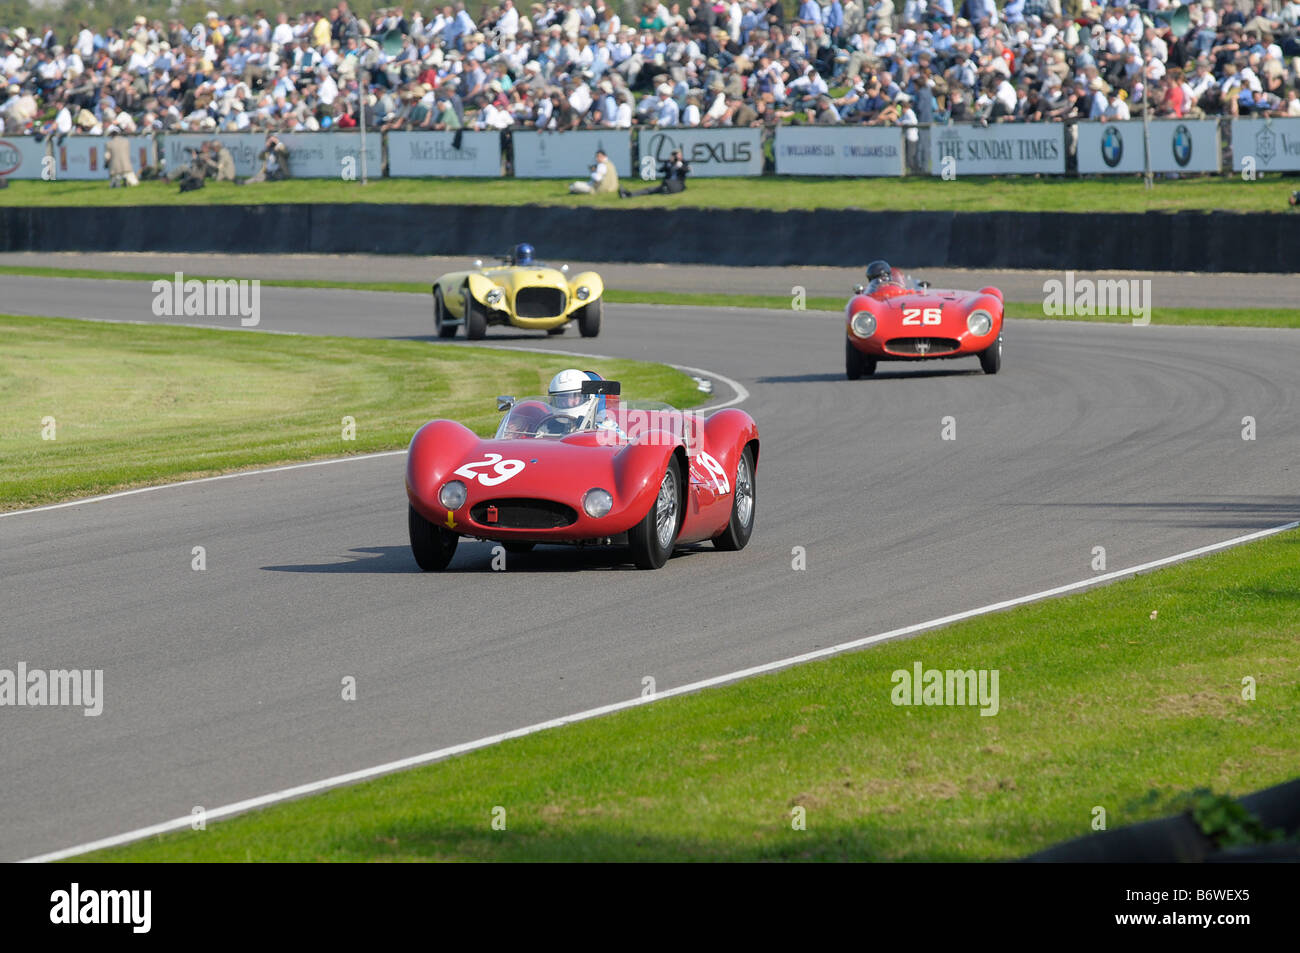 Beim Goodwood Revival meeting September 2008 Maserati Tipo 61 Birdcage 1959 2890cc Nick Mason Stockbild